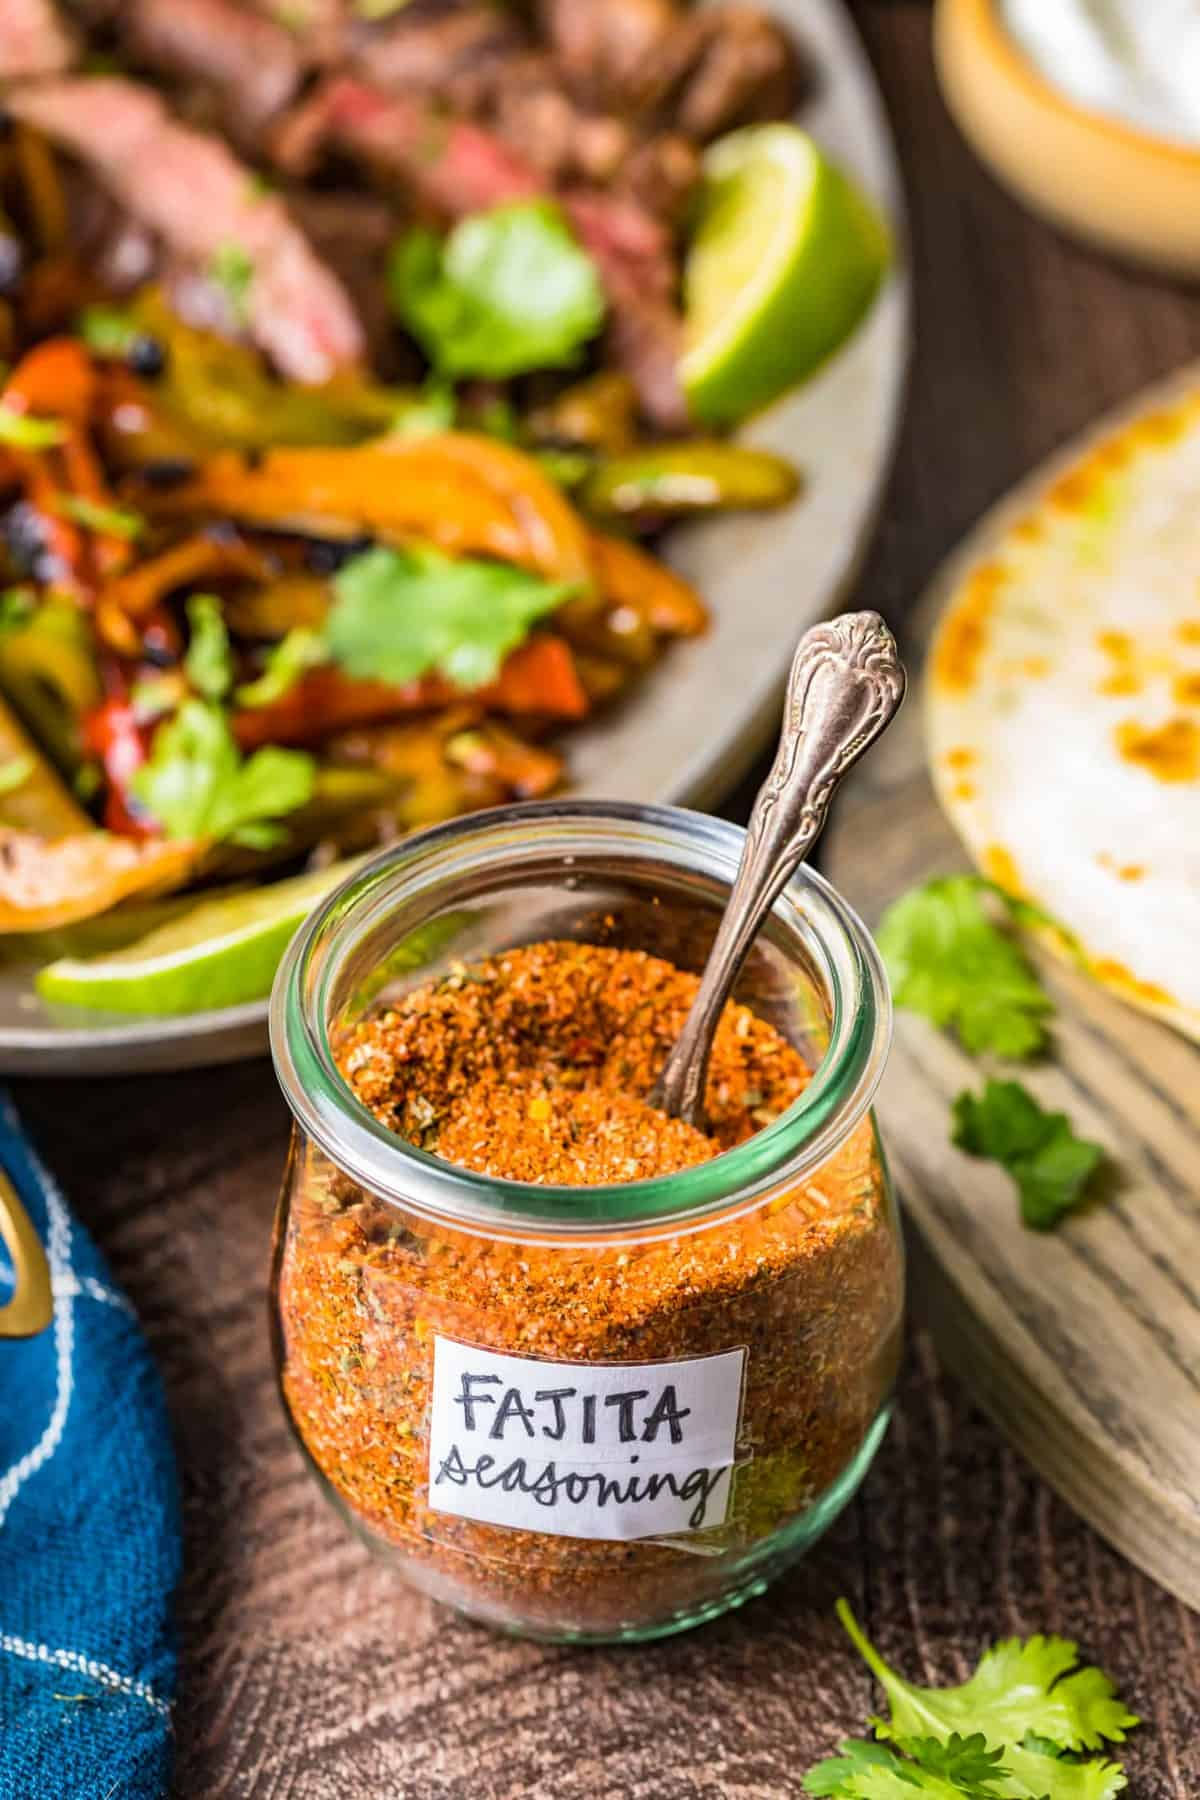 A labelled jar of homemade fajita seasoning